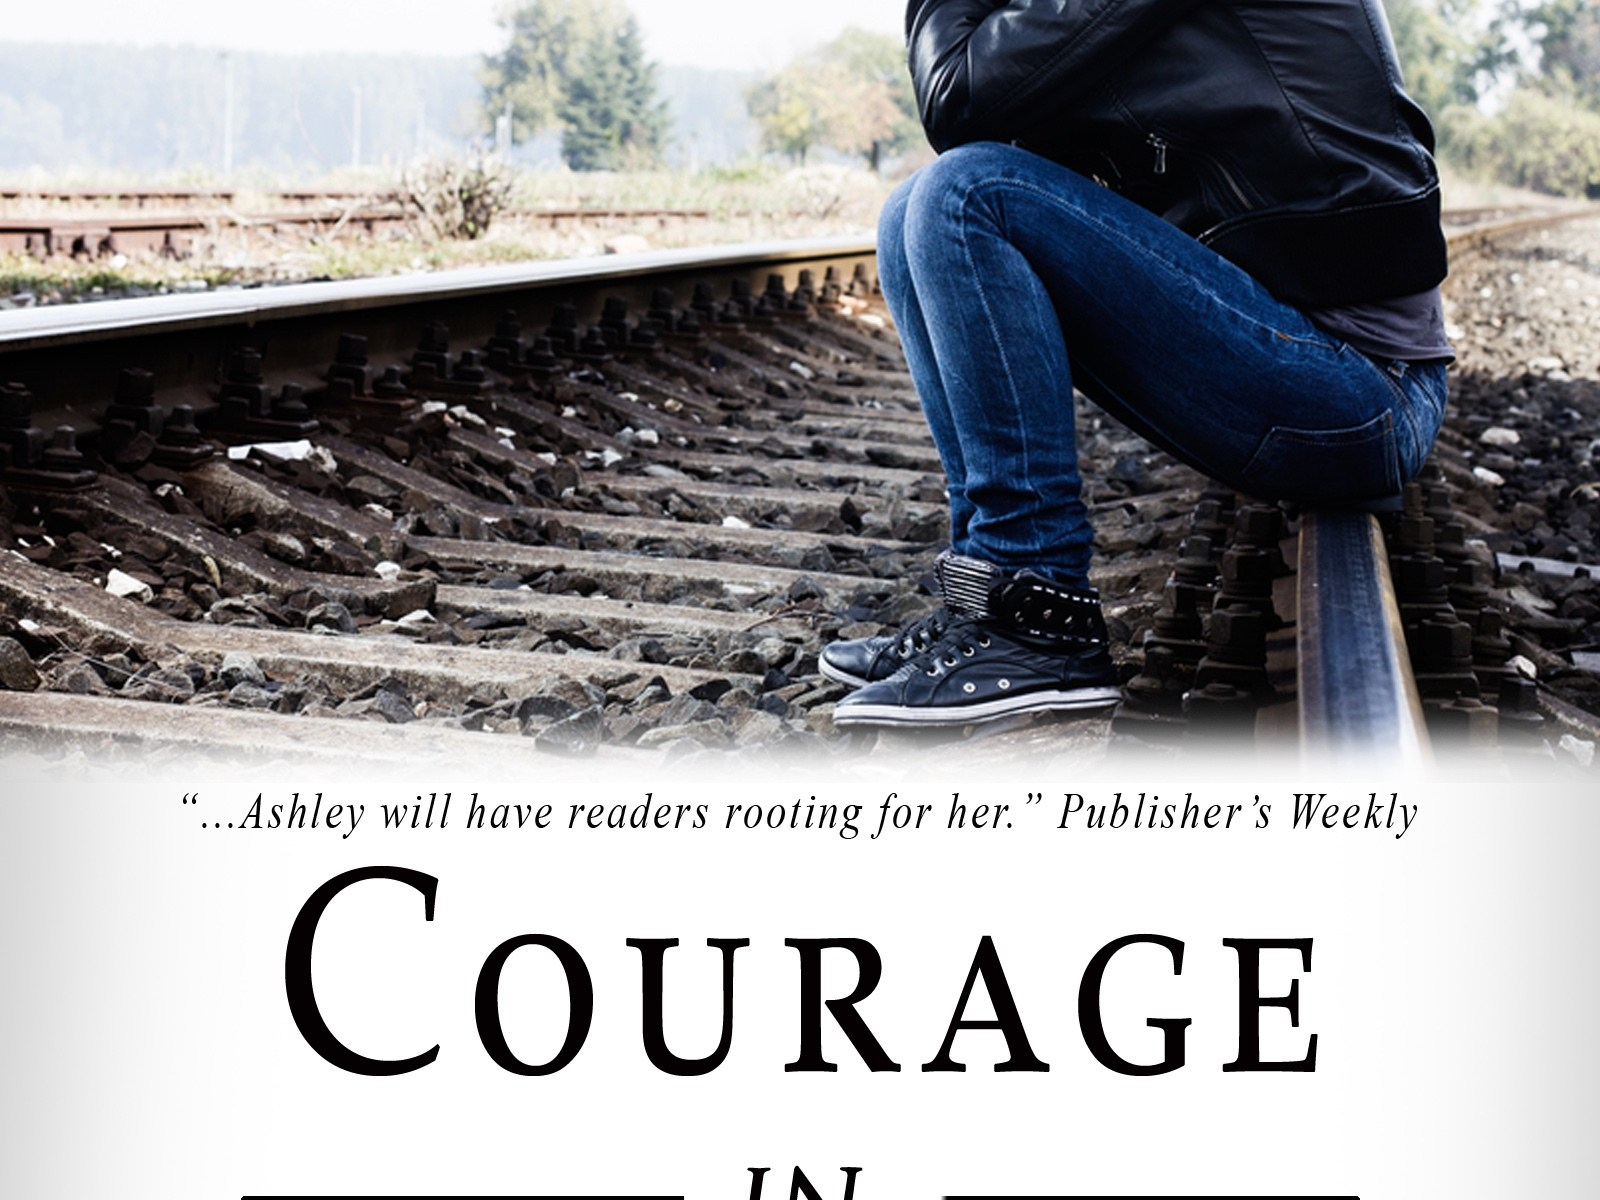 Find Out How To Get Your Free Ebook, And Read Beth's Insights Into The  Creation Of Courage In Patience And The Process Of Recovery From Childhood  Sexual